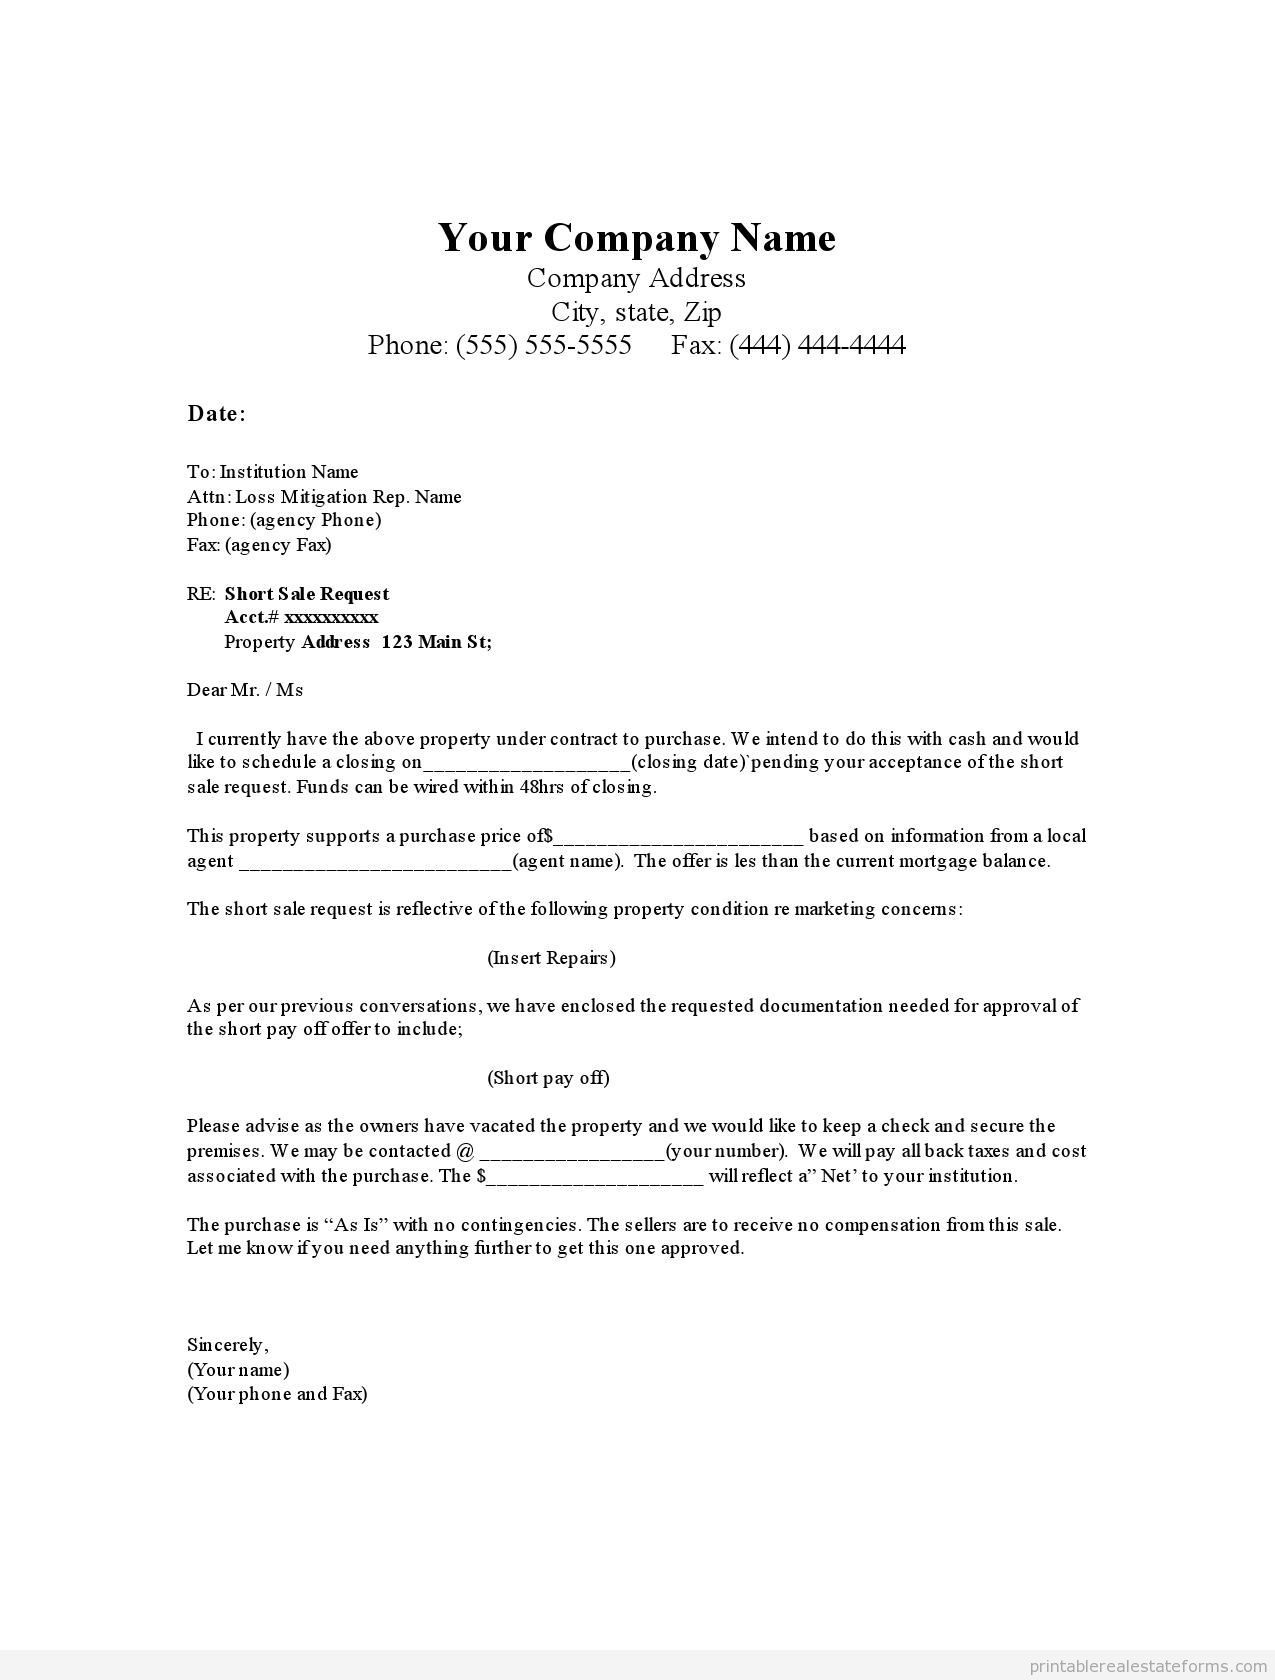 Real Estate Offer Cover Letter Sample - Cover Letter Sample 2017